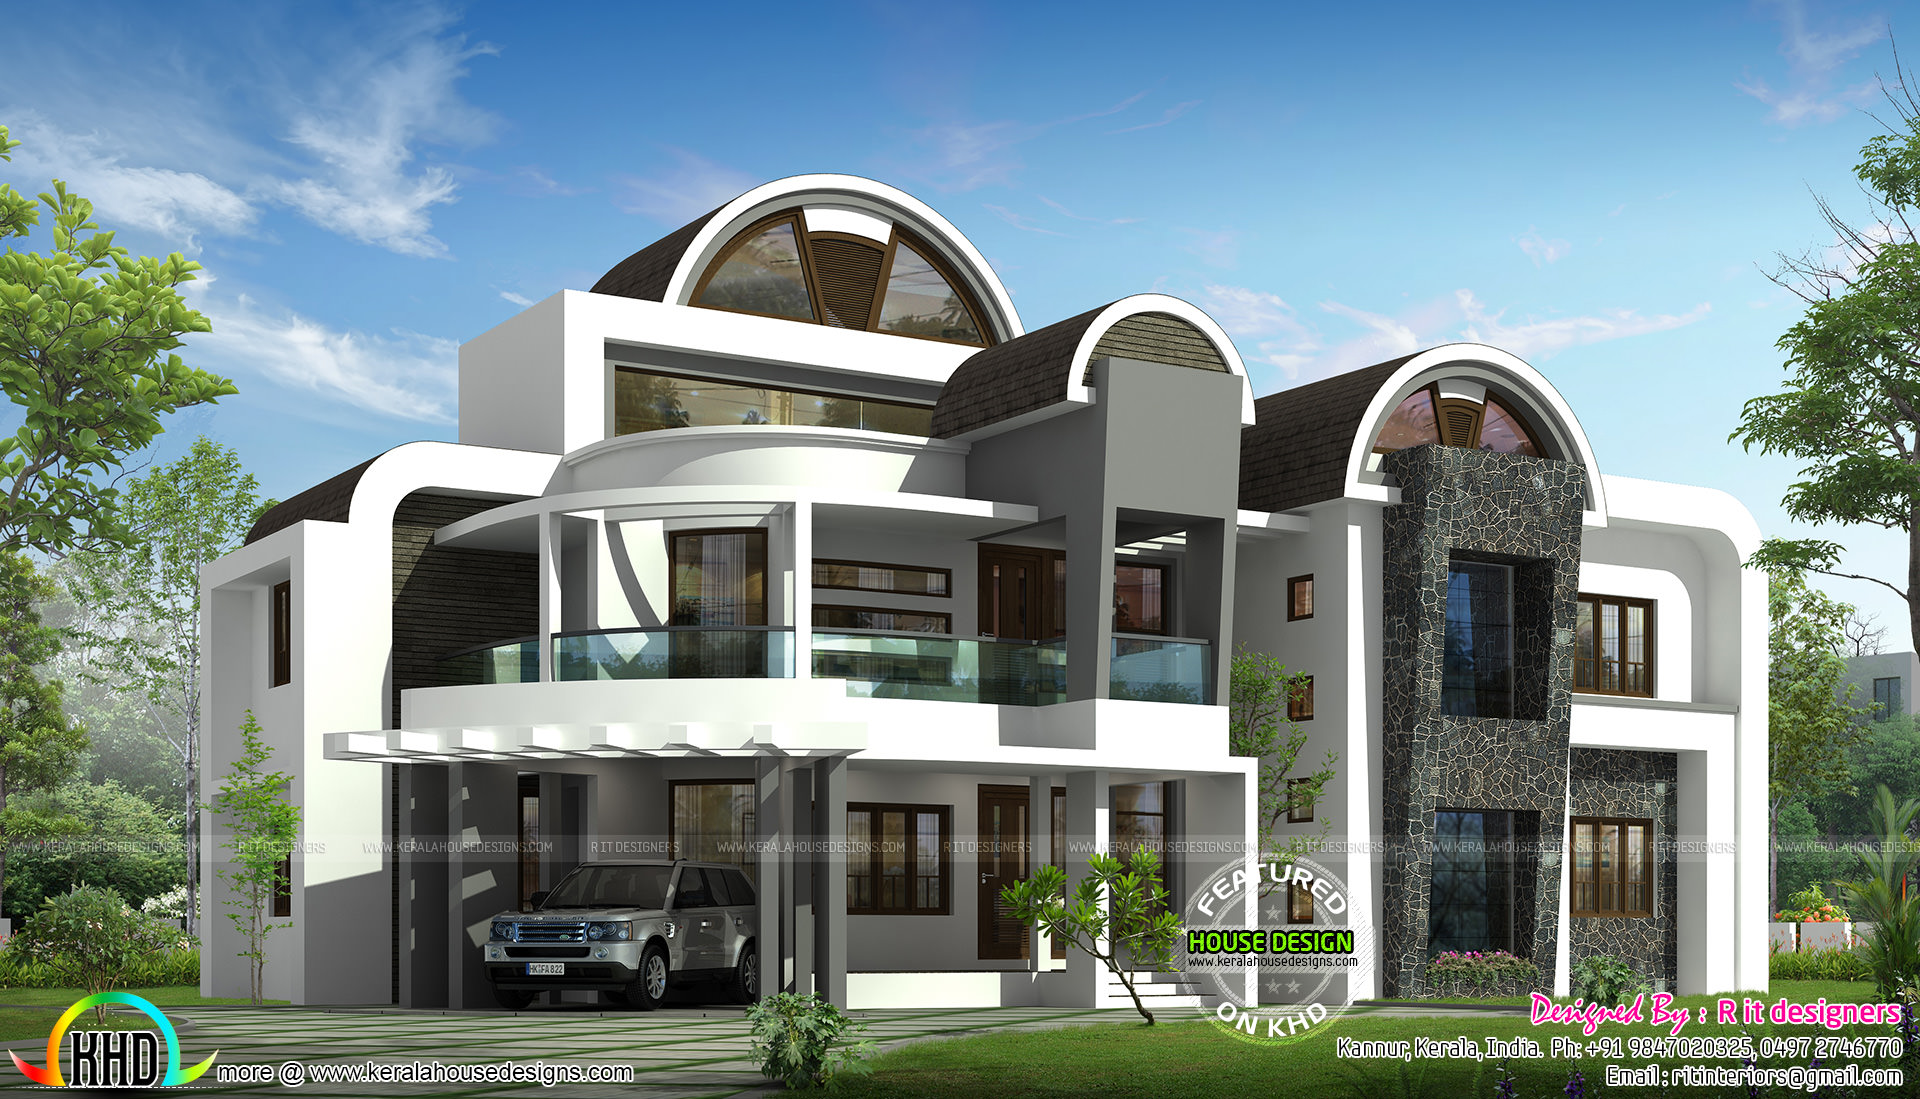 Half round roof unique house design kerala home design for Cool house designs